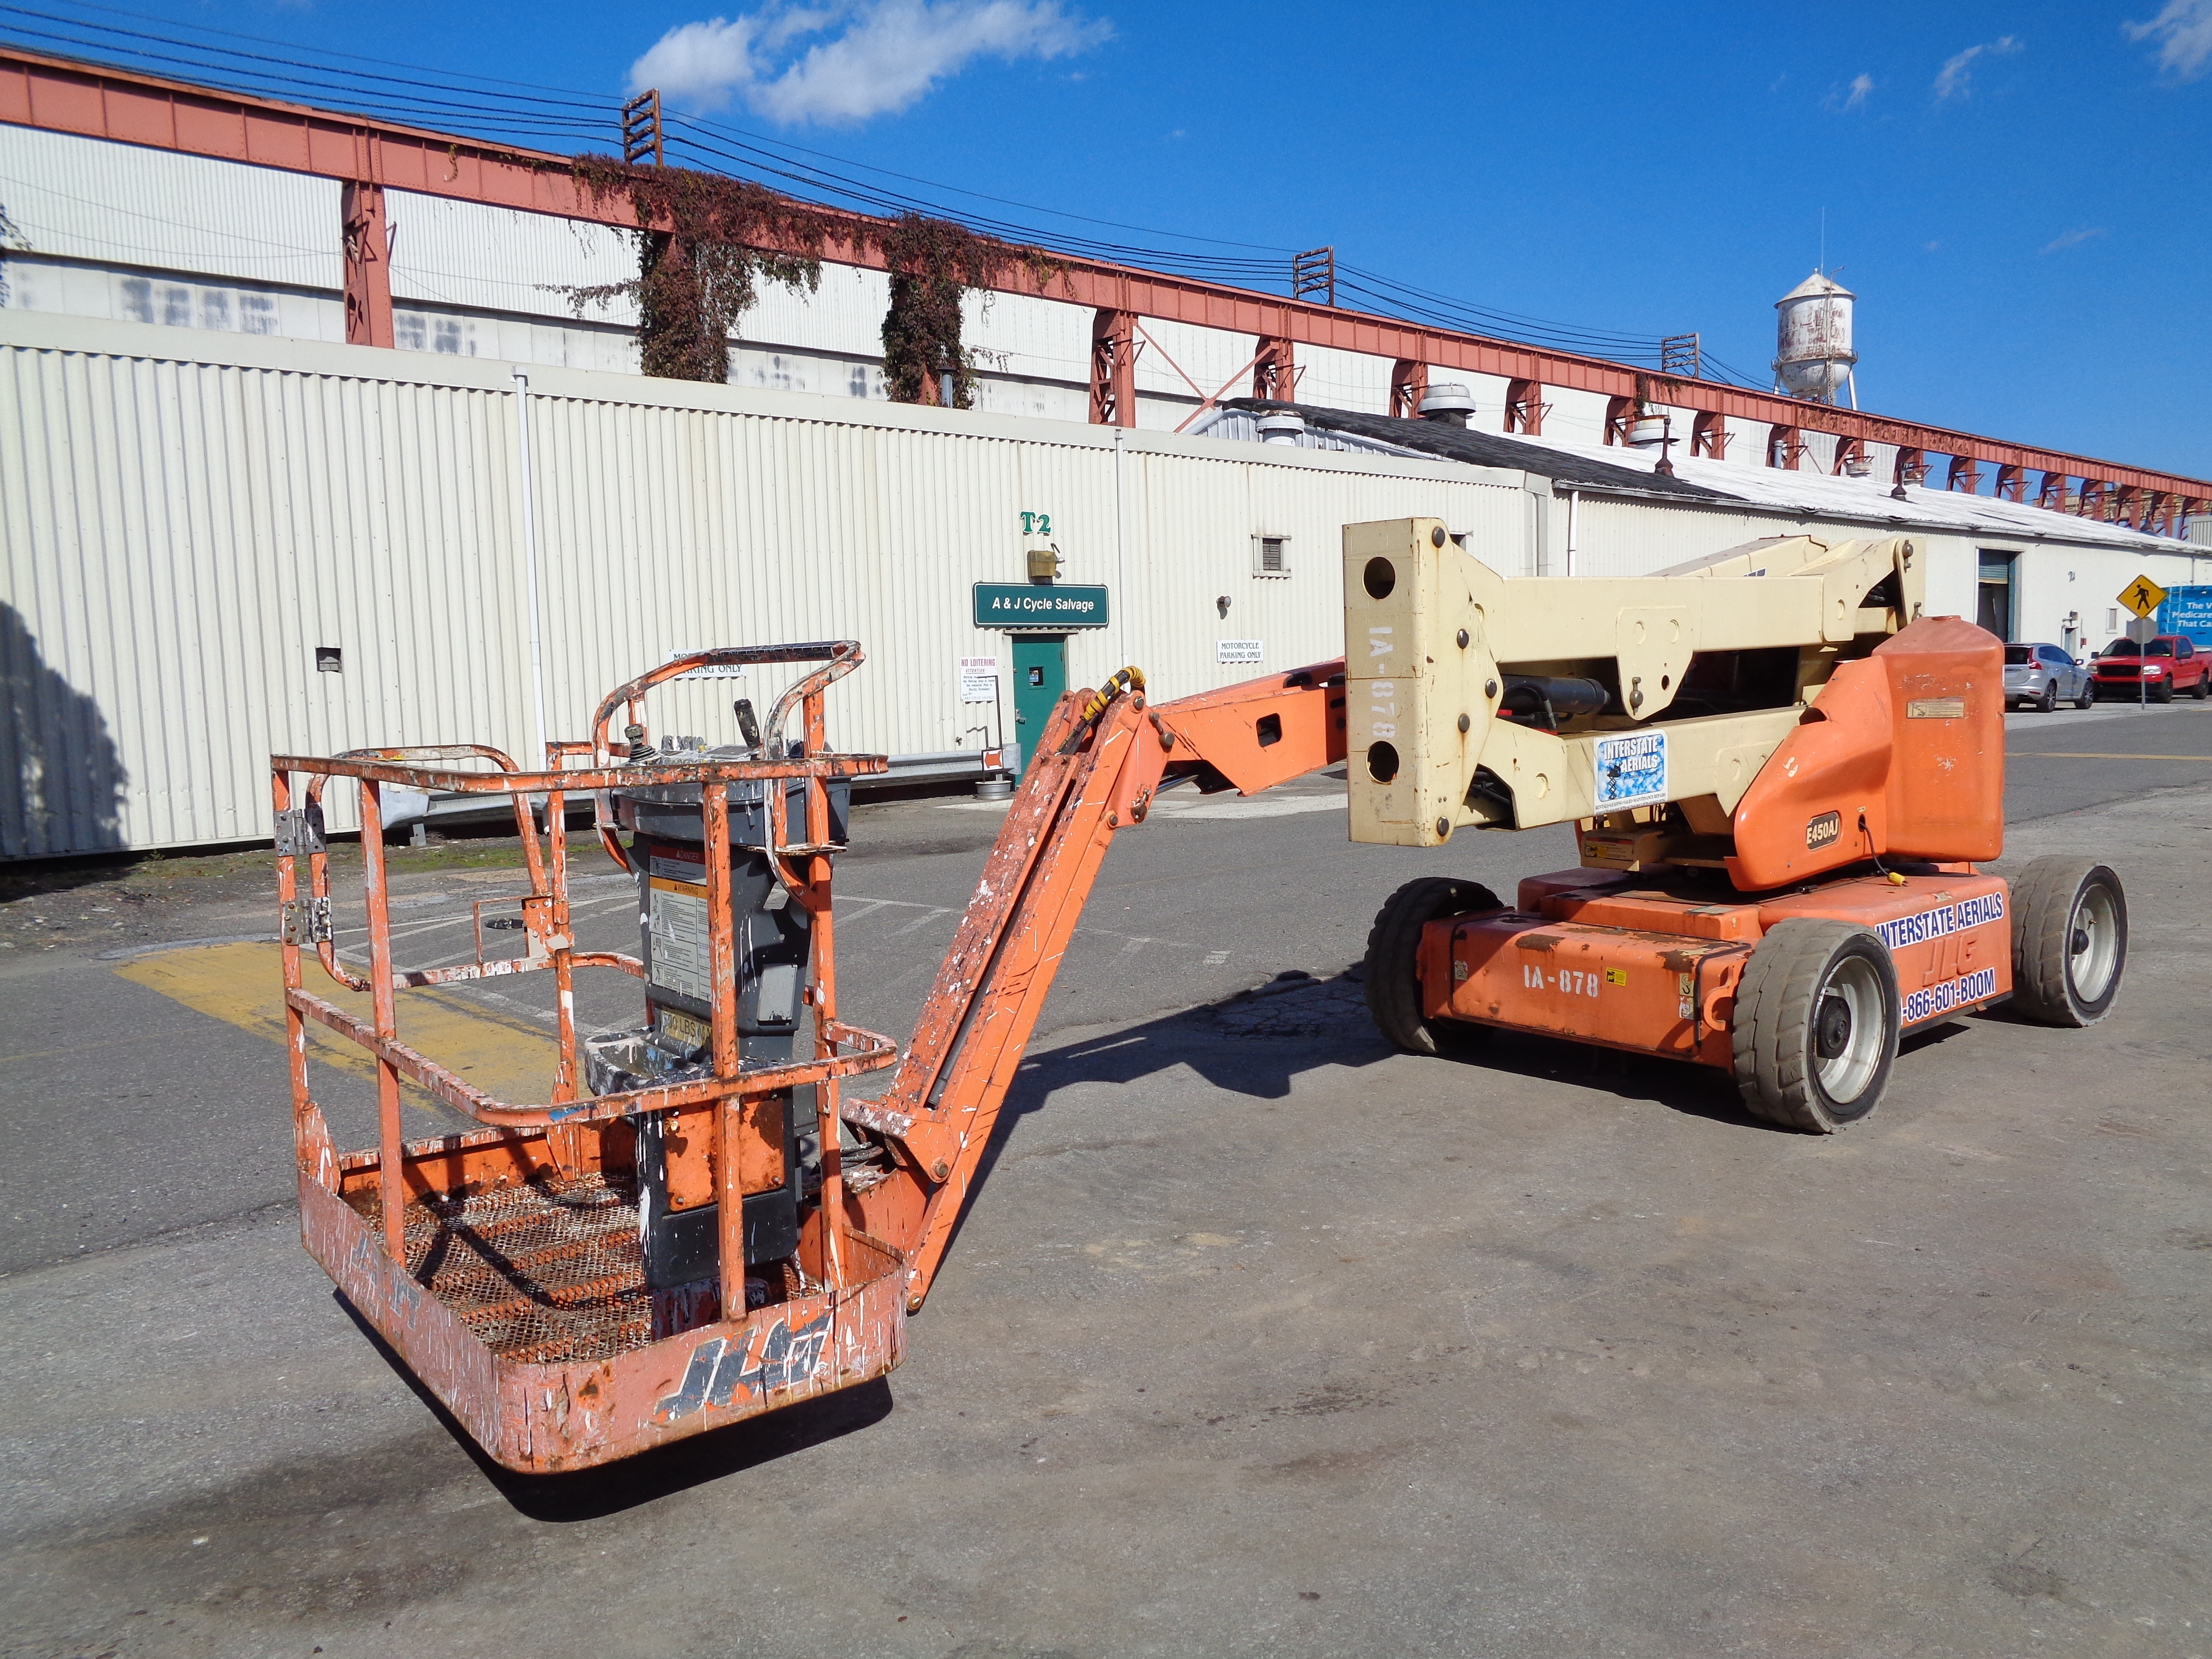 Lot 43 - 2002 JLG E450AJ 4x4 Electric Articulated Boom Lift - 45Ft Height